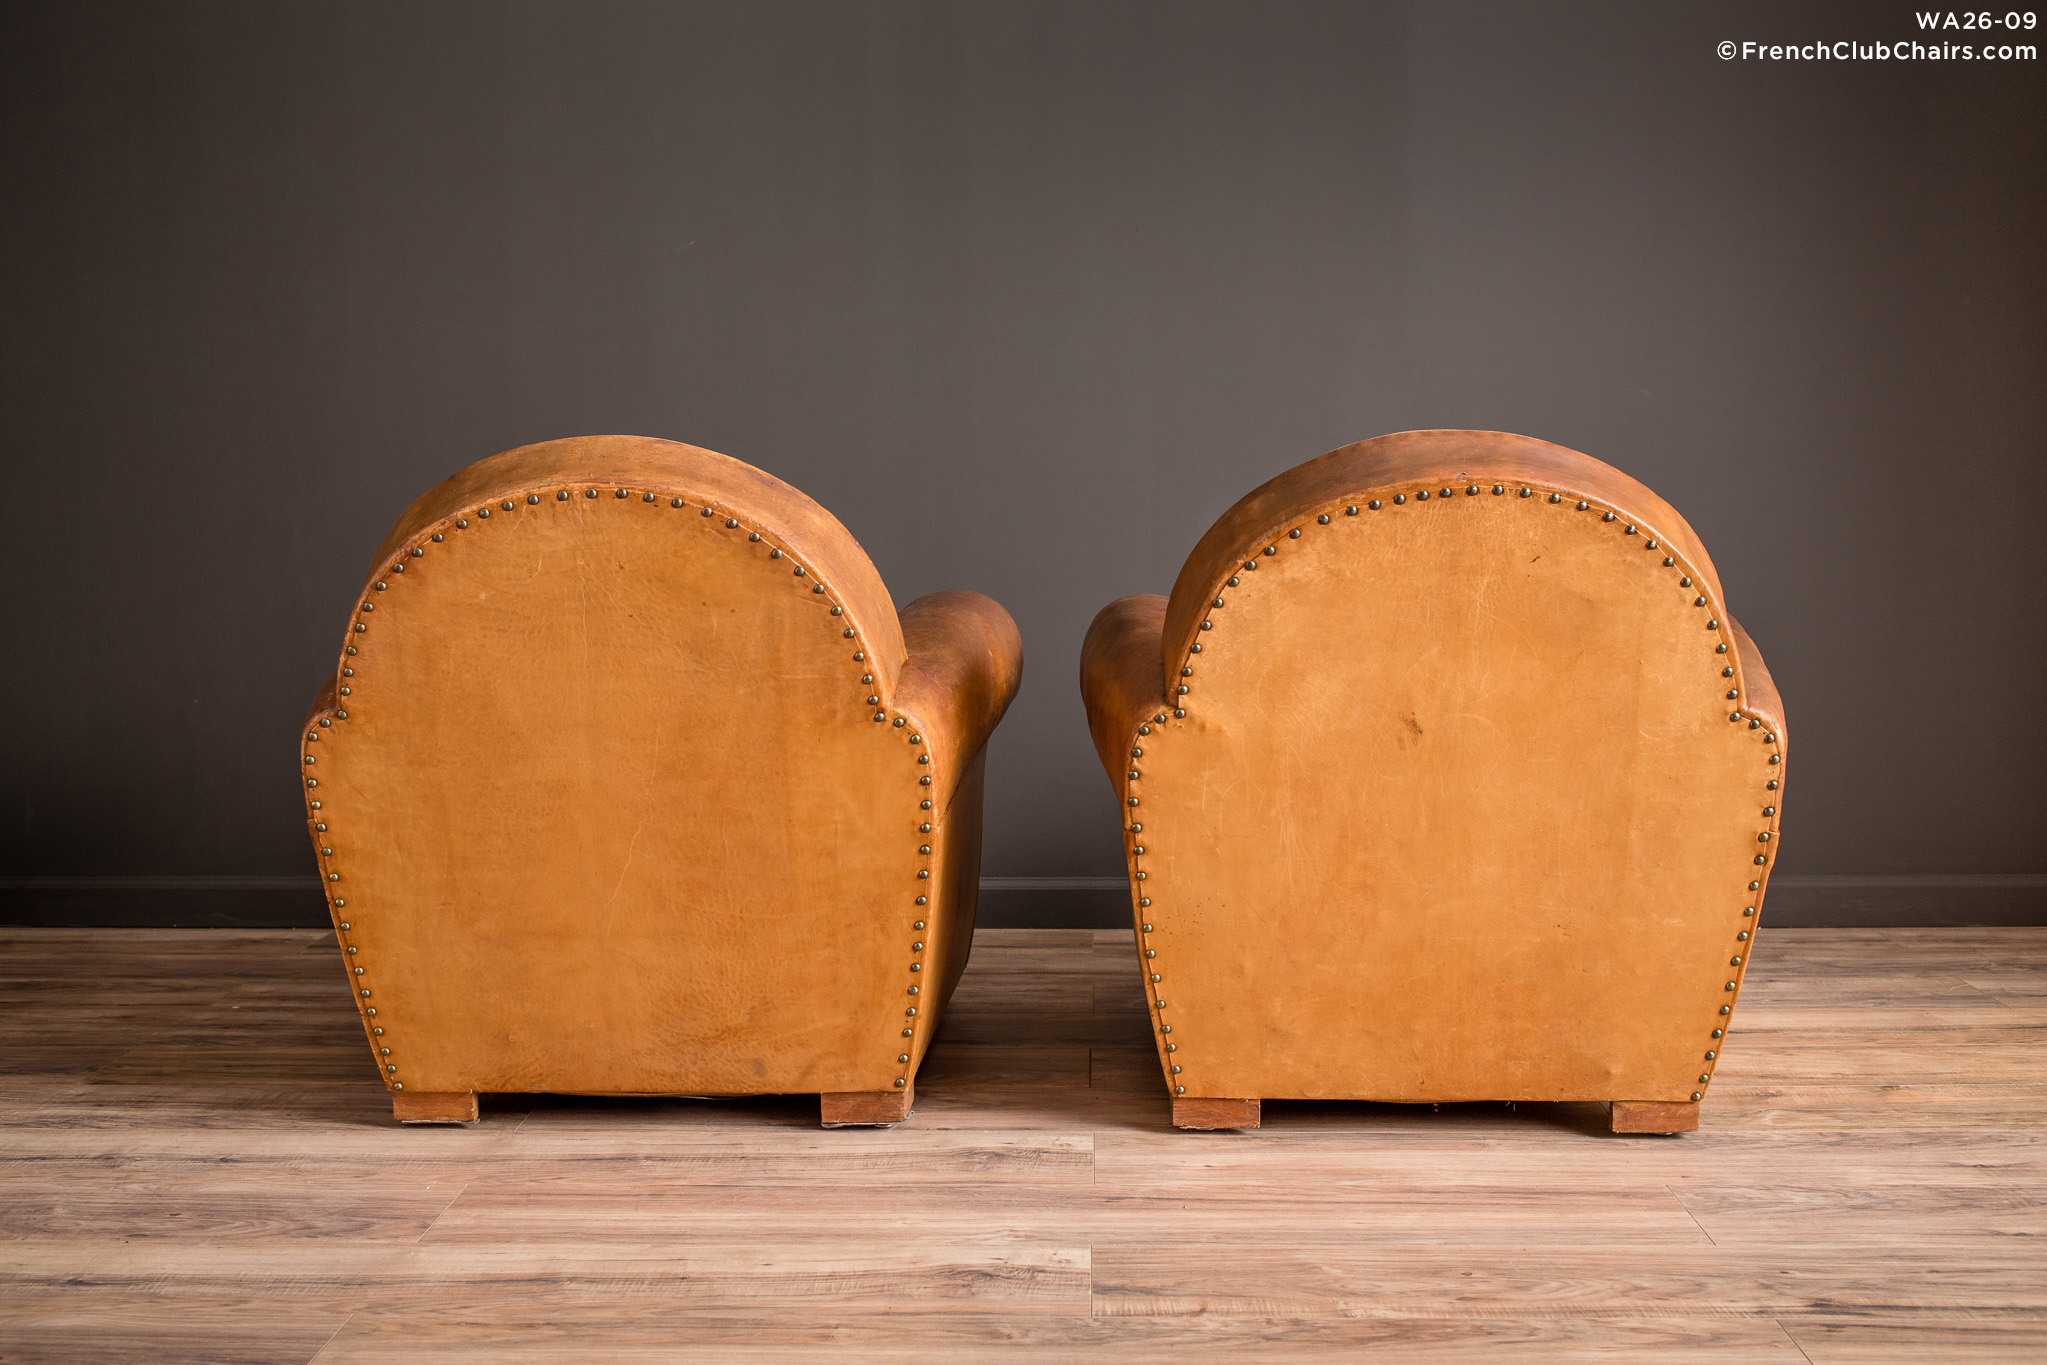 WA_26-09_Bern_Cinema_Clair_pair_R_2BK-v01-williams-antiks-leather-french-club-chair-wa_fcccom